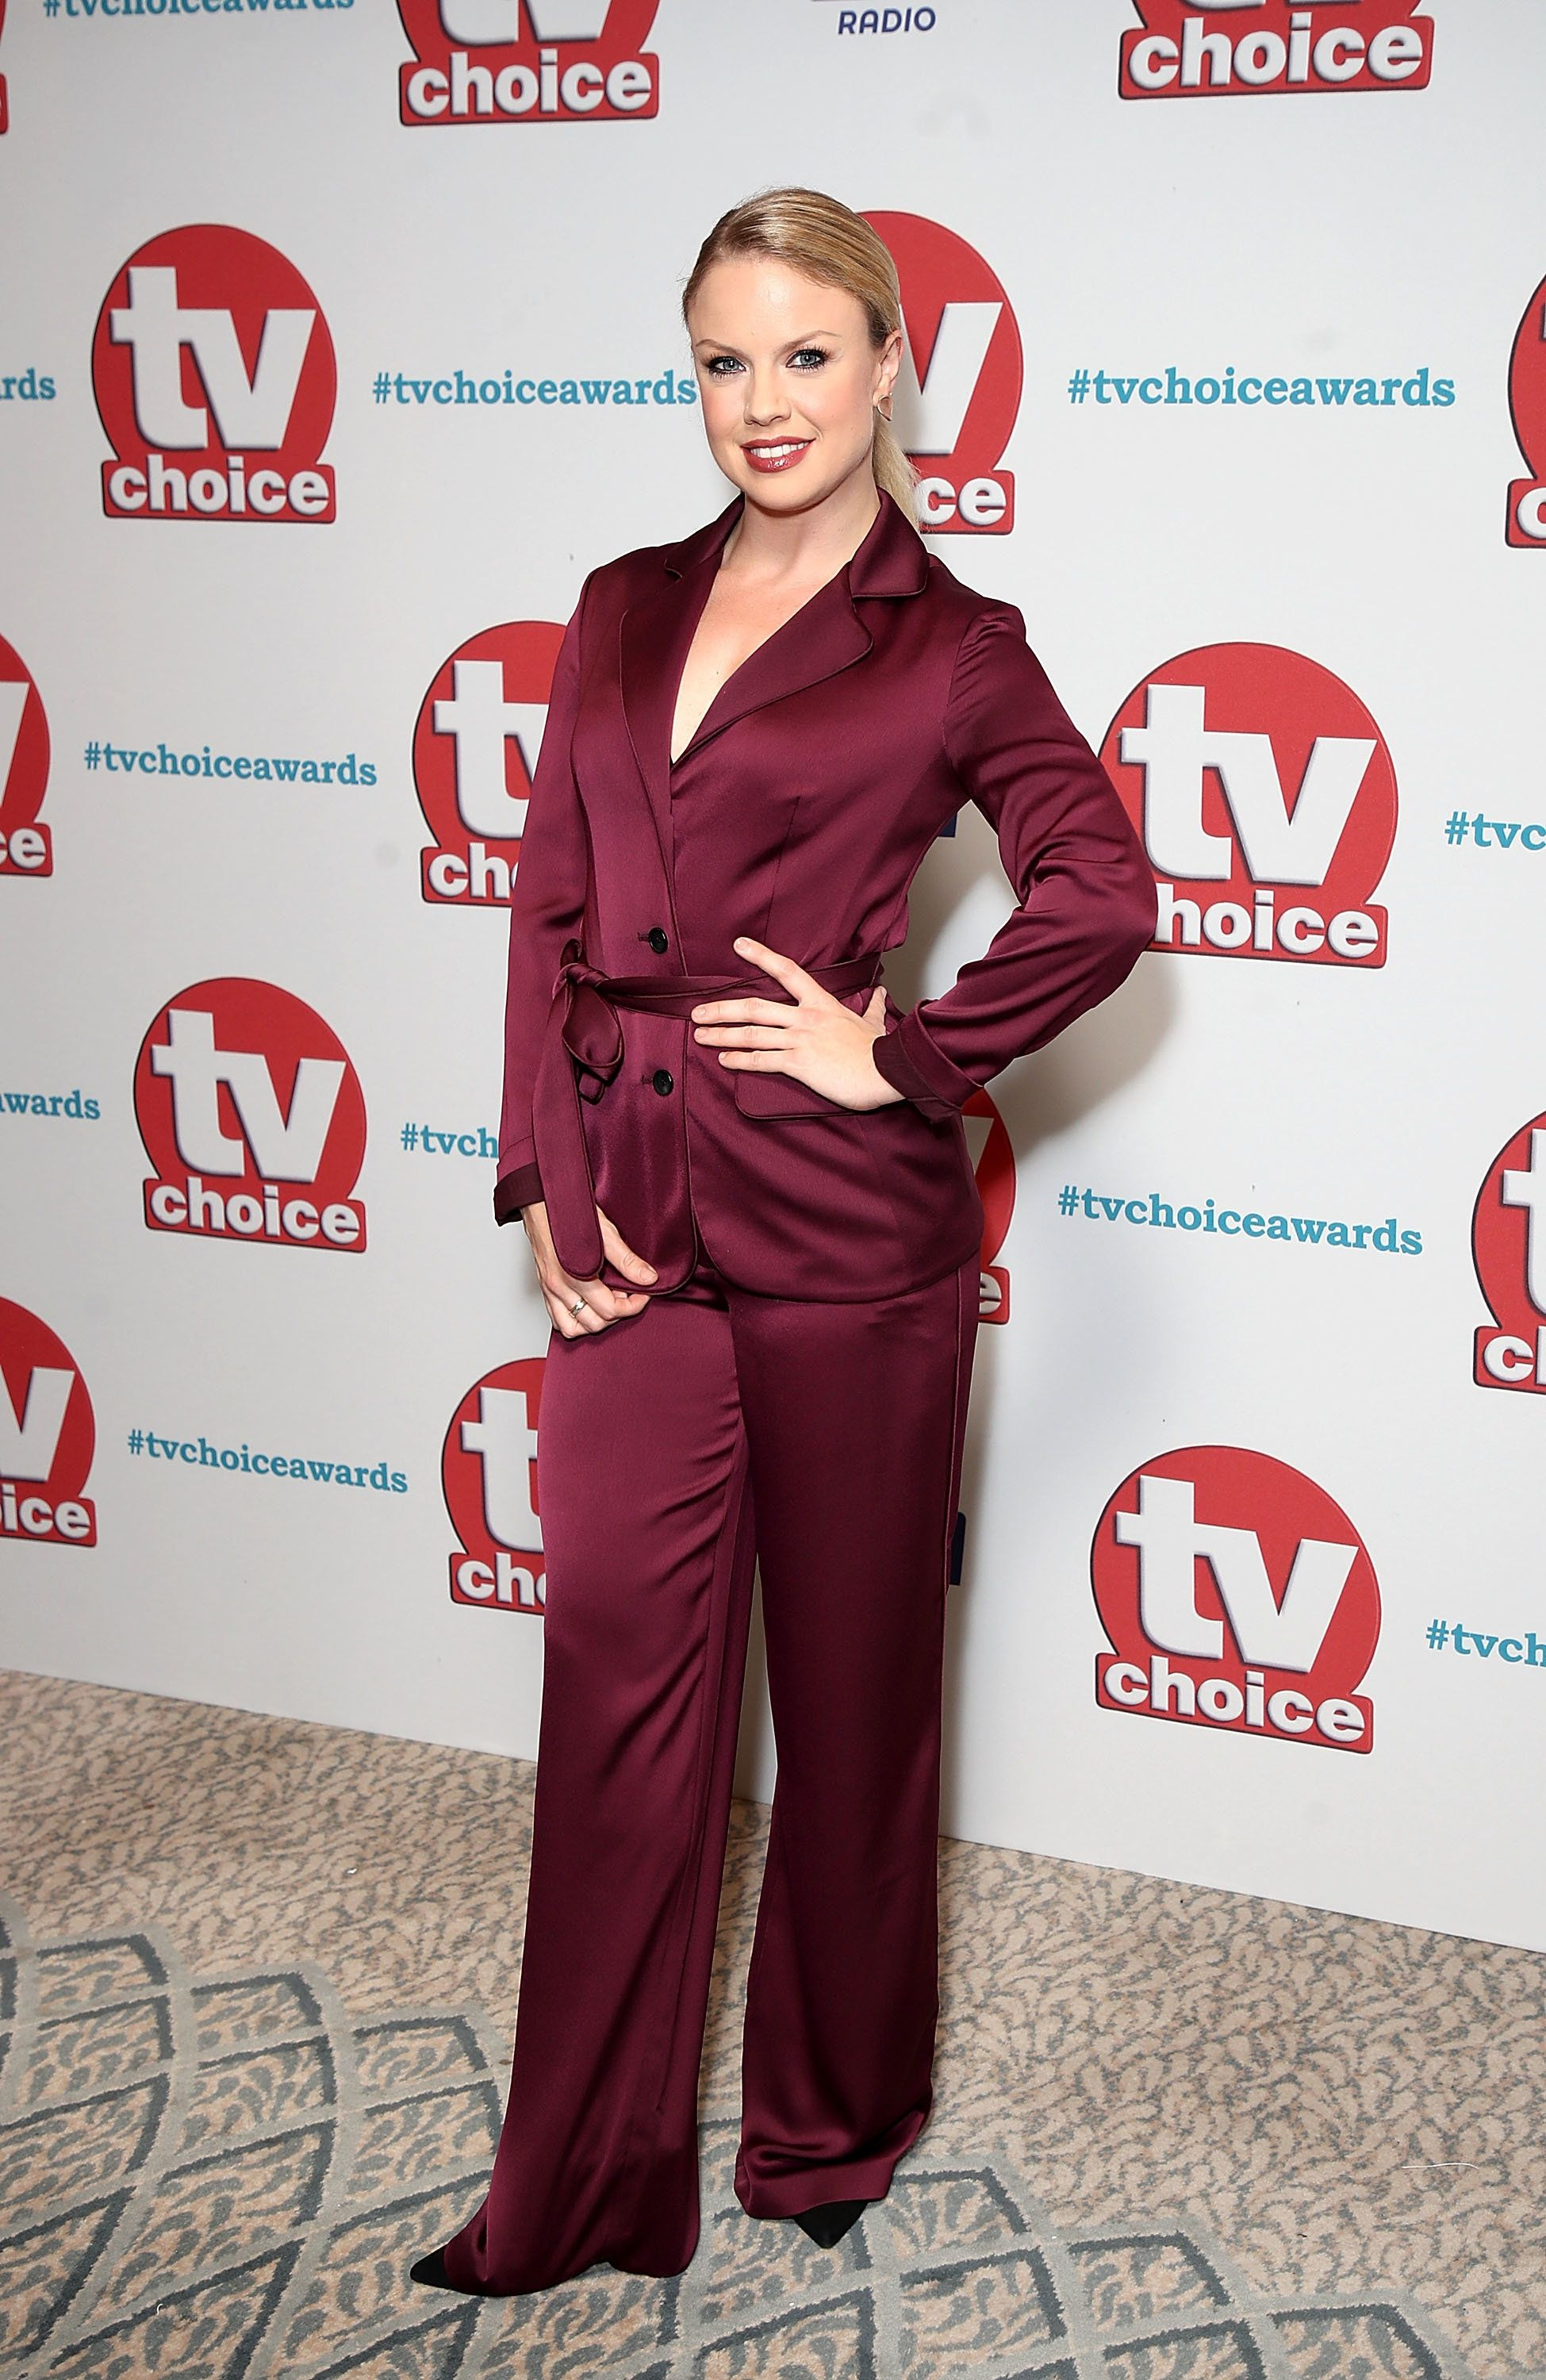 Joanne Clifton Opens Up About 'Strictly Come Dancing'